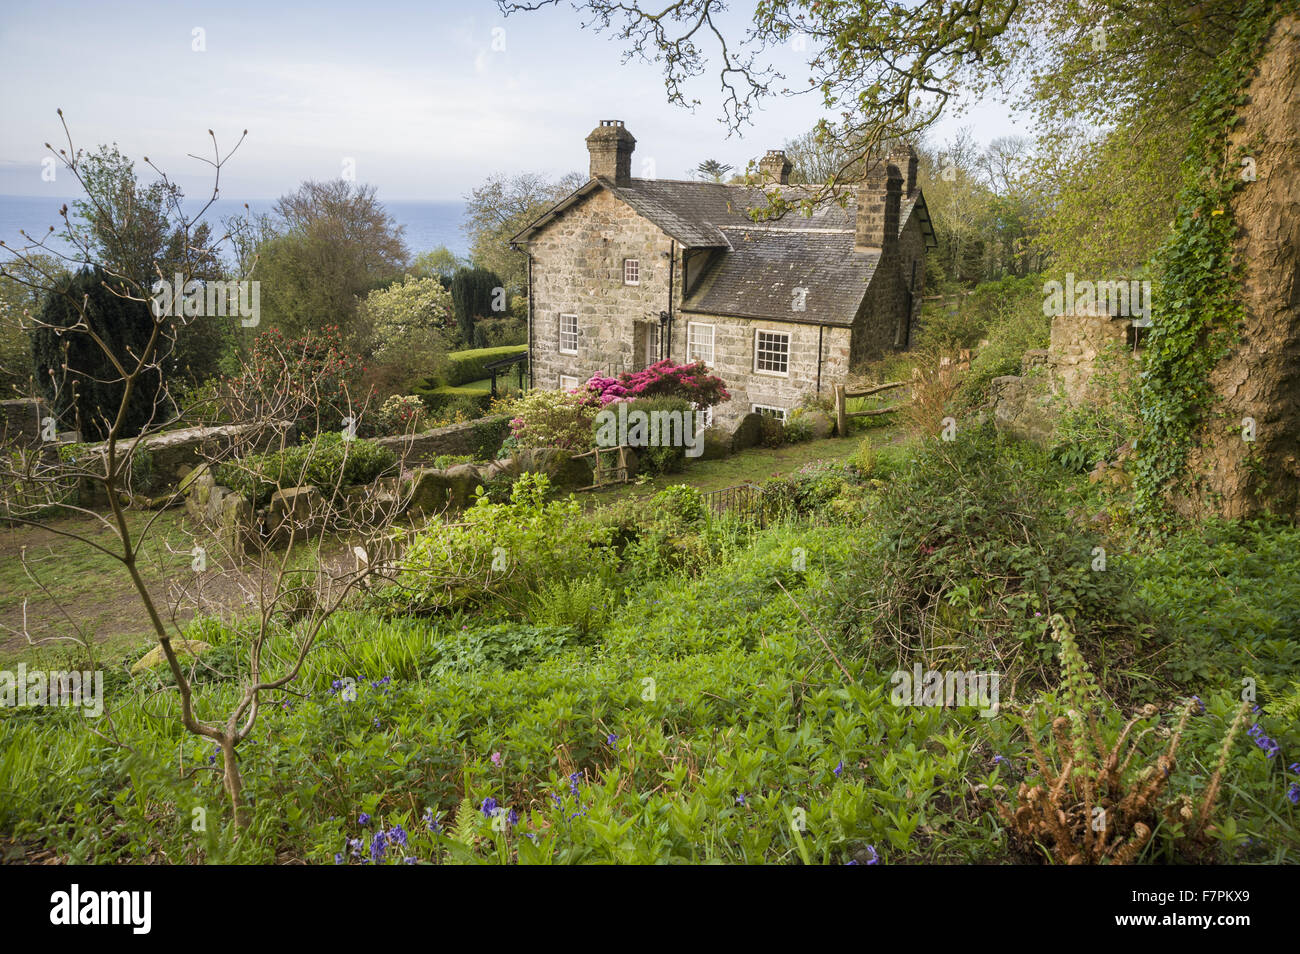 The house, seen from the garden, at Plas yn Rhiw, Gwynedd. The house is framed with bright azaleas and the new leaves Stock Photo